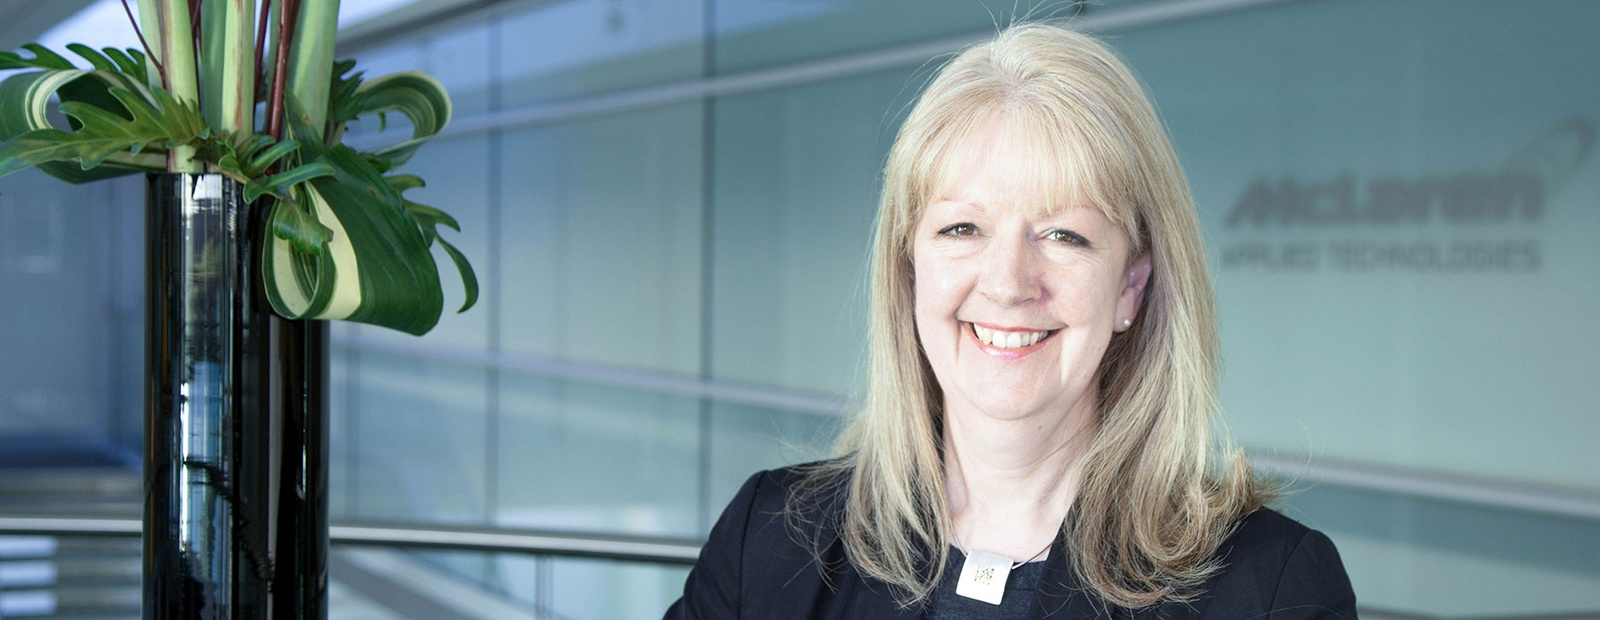 CELIA GAFFNEY JOINS McLAREN APPLIED TECHNOLOGIES AS COO